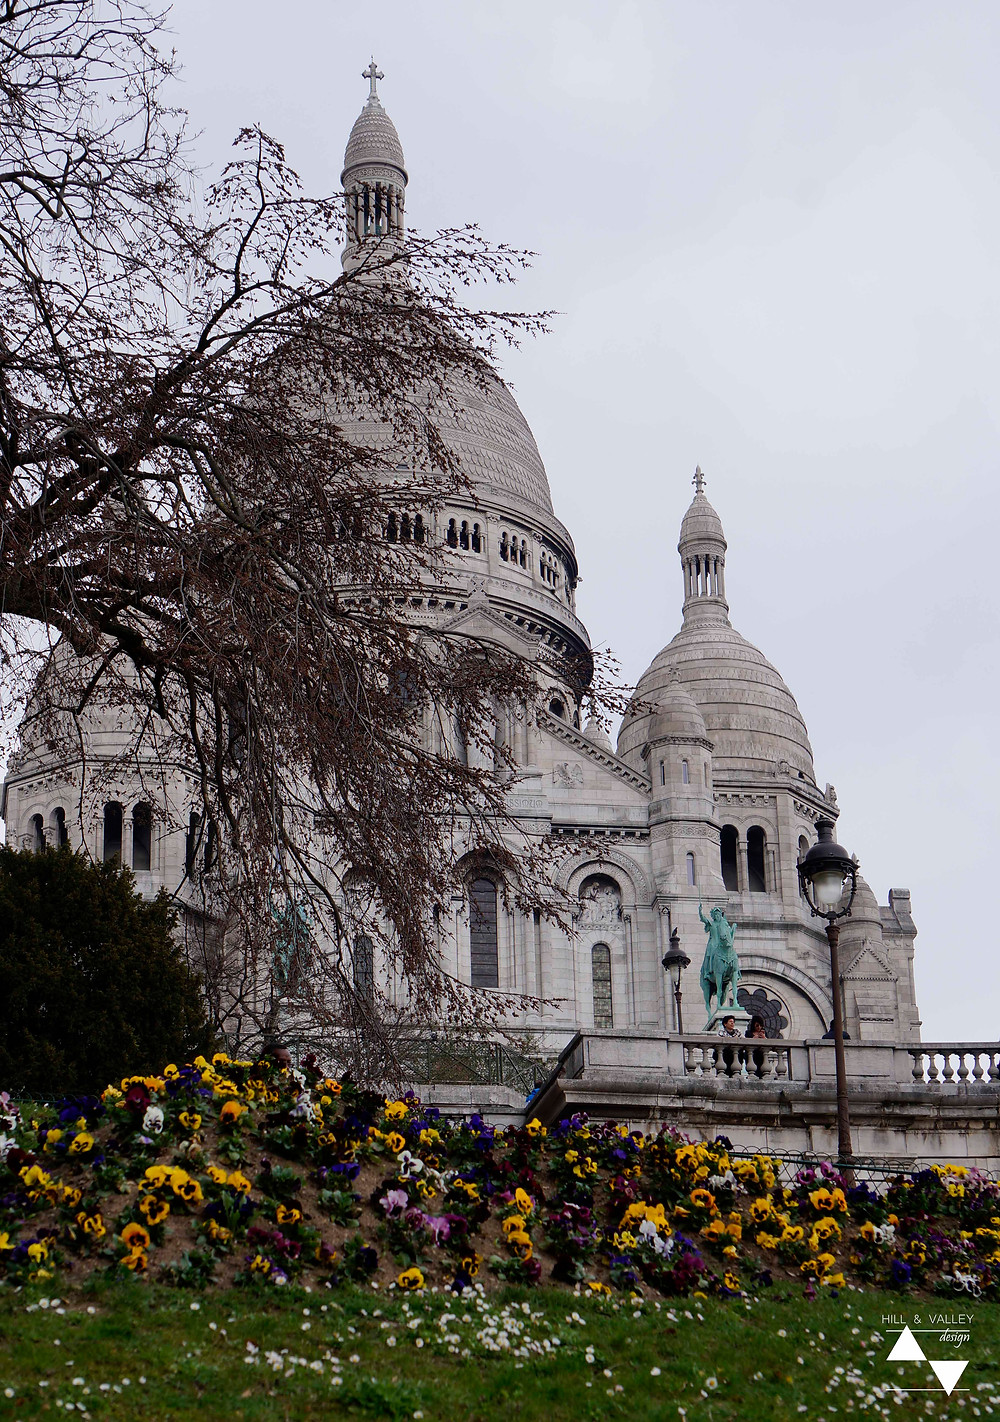 view of landscaping around Sacré-Coeur